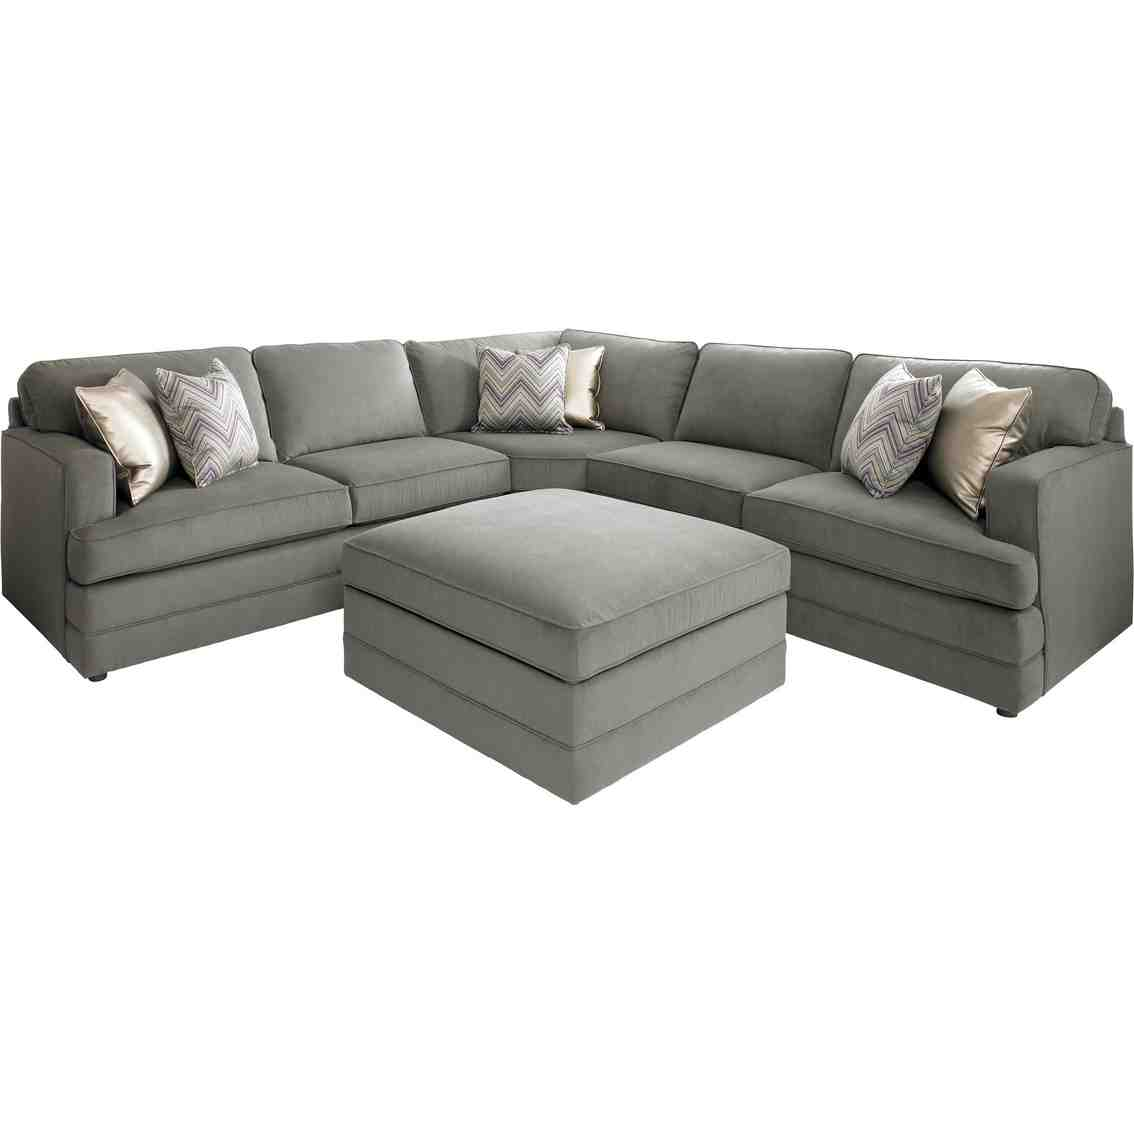 Sofa Set Covers For L Shape L Shaped Sectional Sofa Home Furniture Design